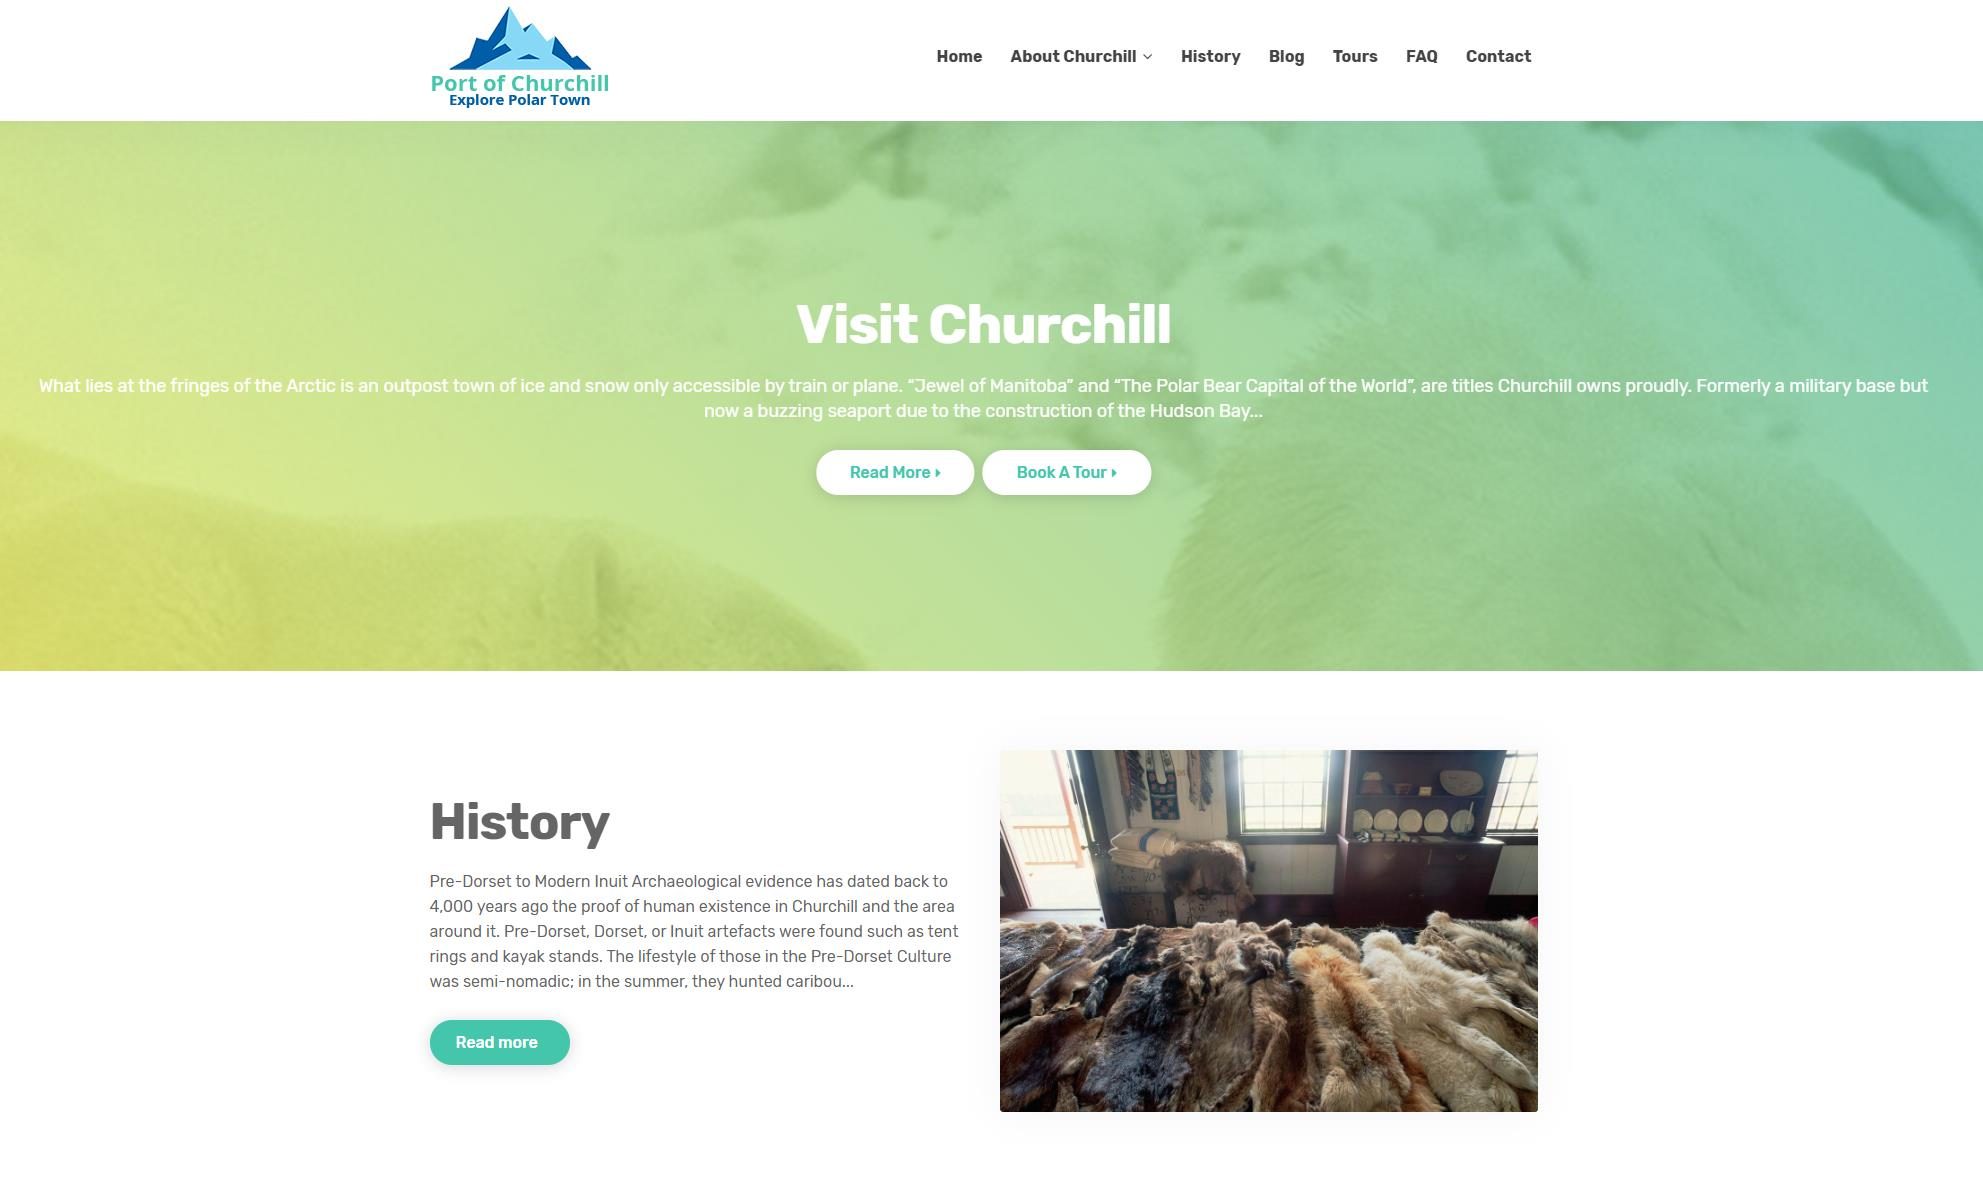 Port of Churchill website designed by 6P Marketing